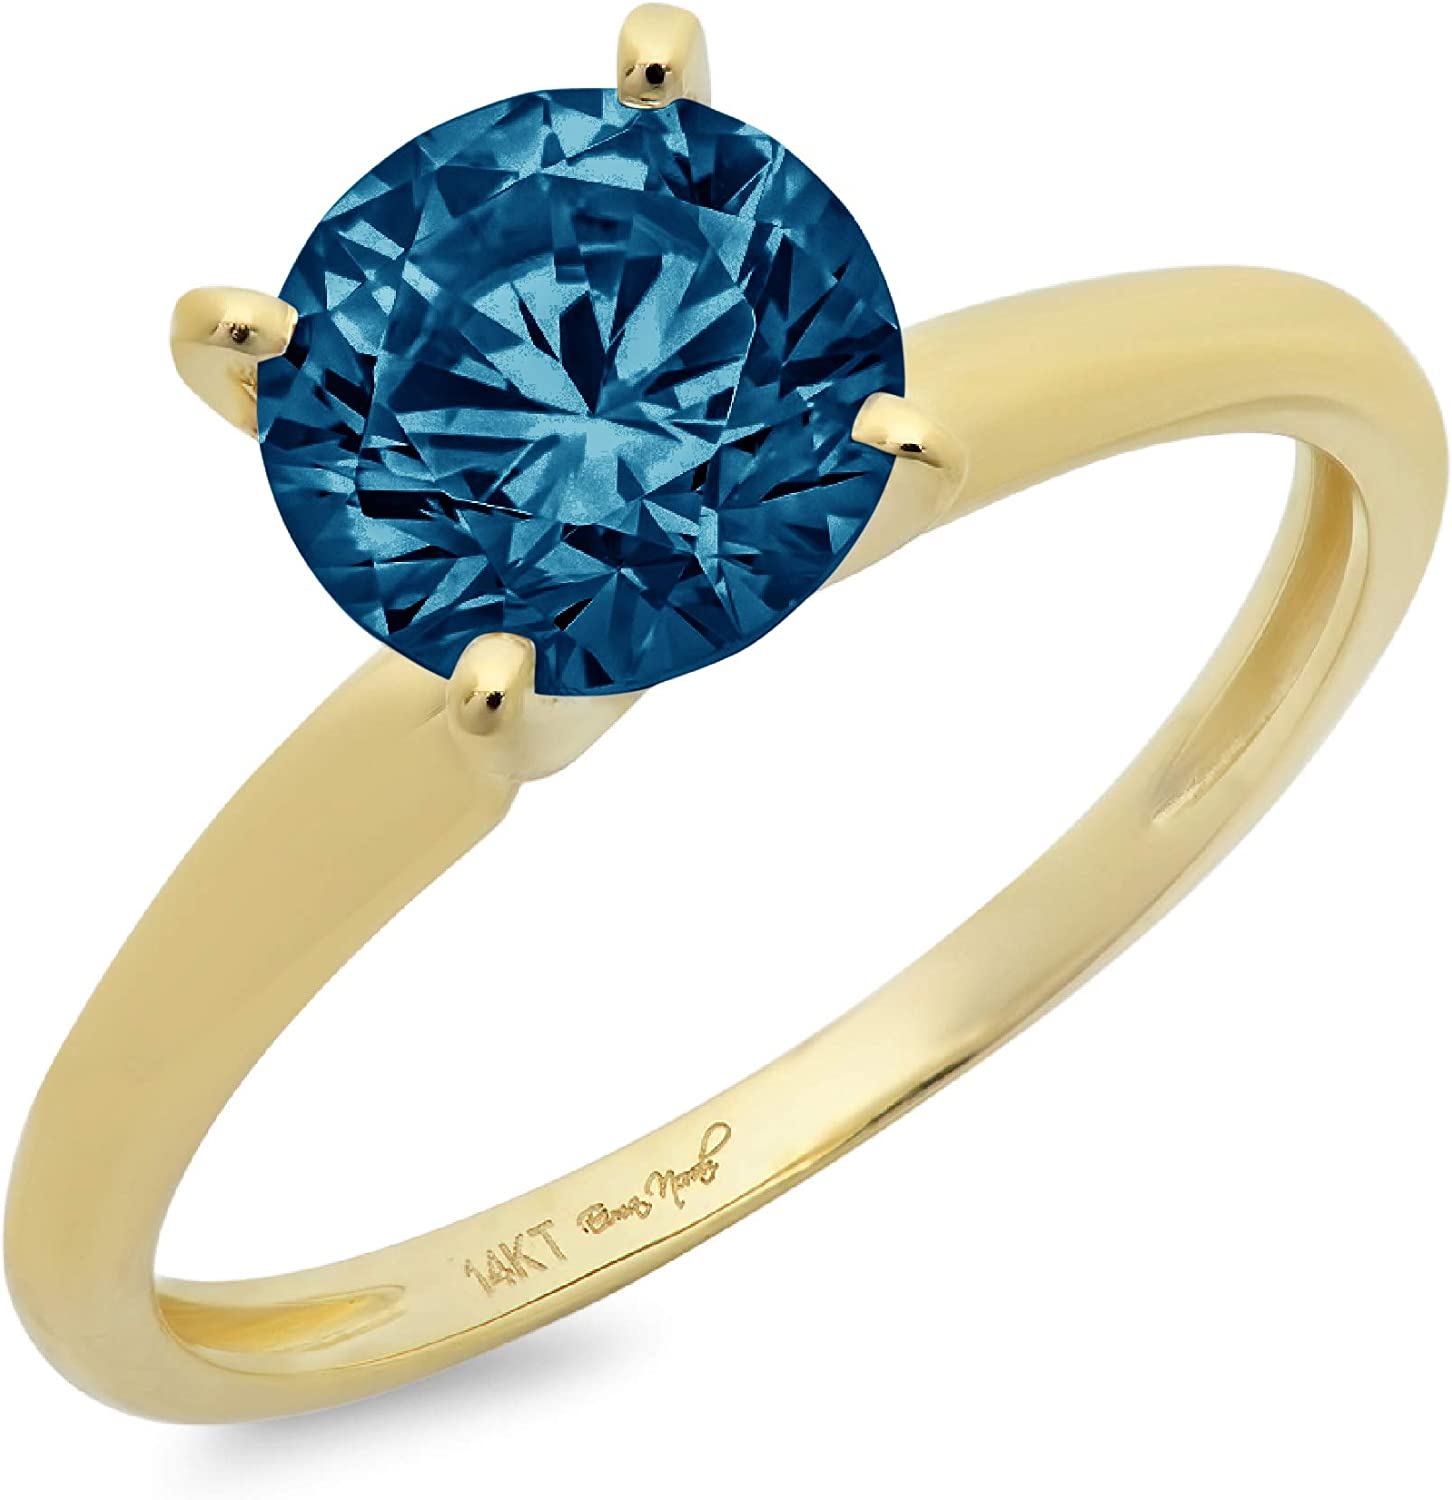 3.0 ct Brilliant Round Cut Solitaire Natural London Blue Gem Stone Ideal VVS1 4-Prong Engagement Wedding Bridal Promise Anniversary Ring in Solid Real 14k Yellow Gold for Women